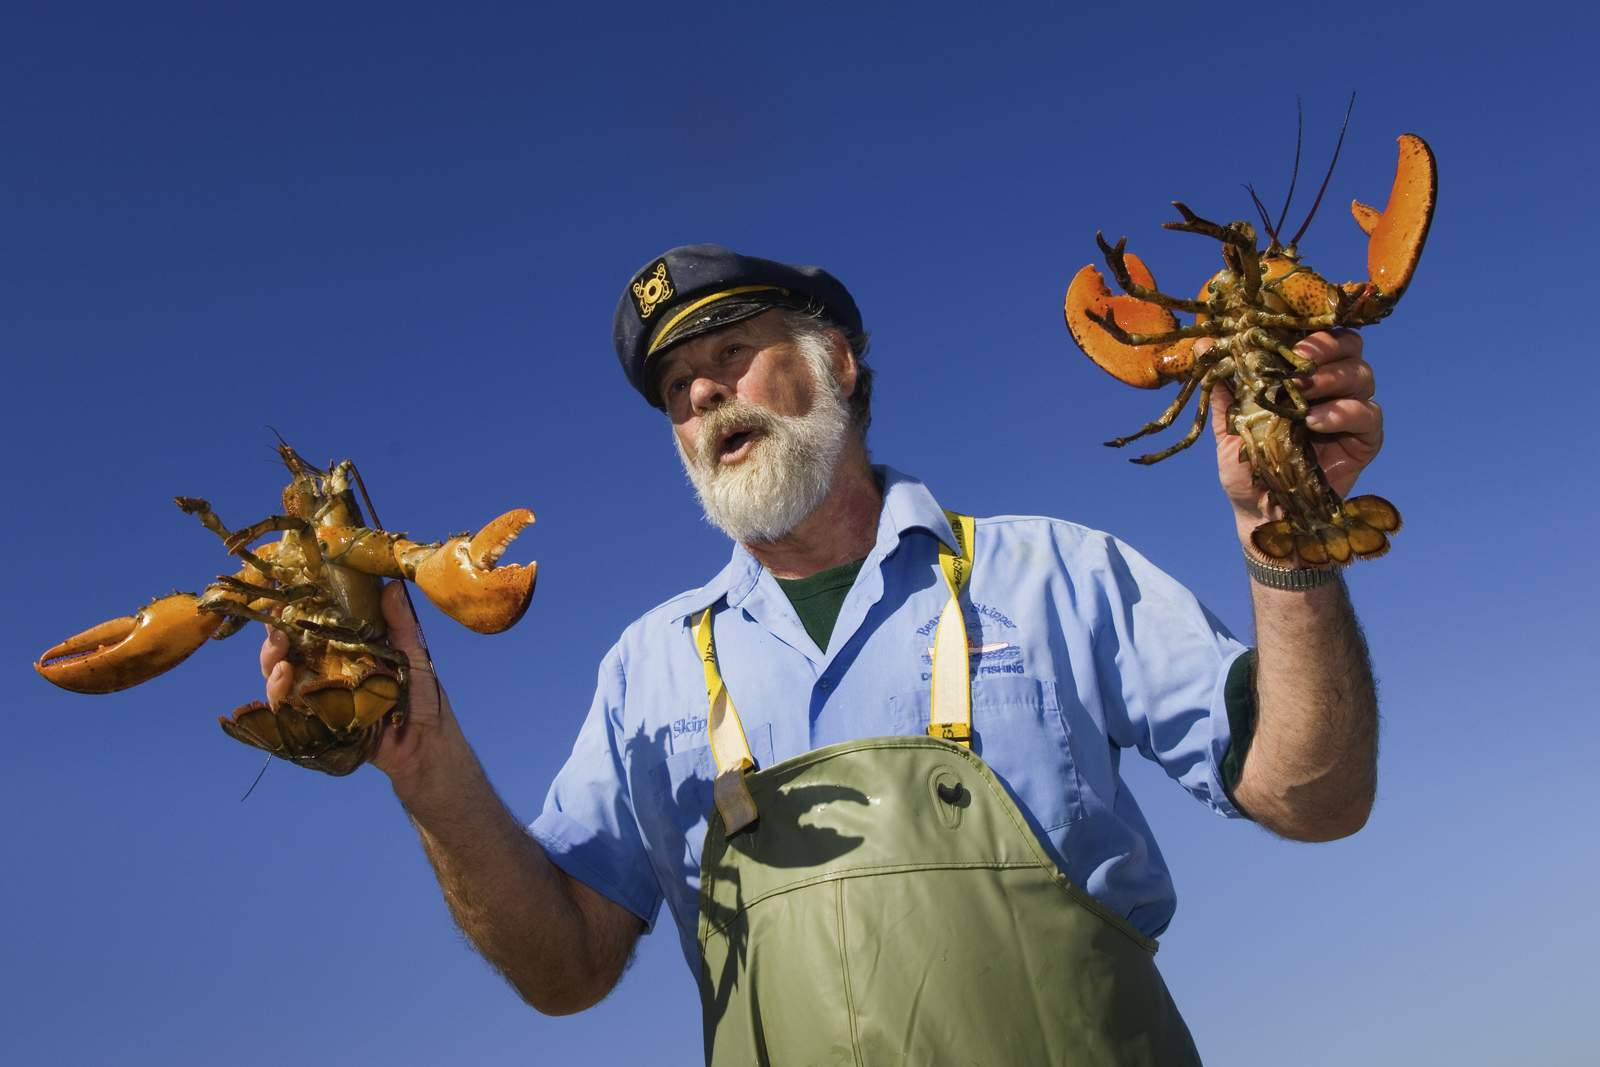 Lobster fisherman Norm Peters, Ãââ,¬â»¢The Bearded SkipperÃââ,¬Å« of Rustico, Prince Edward Island, Canada.